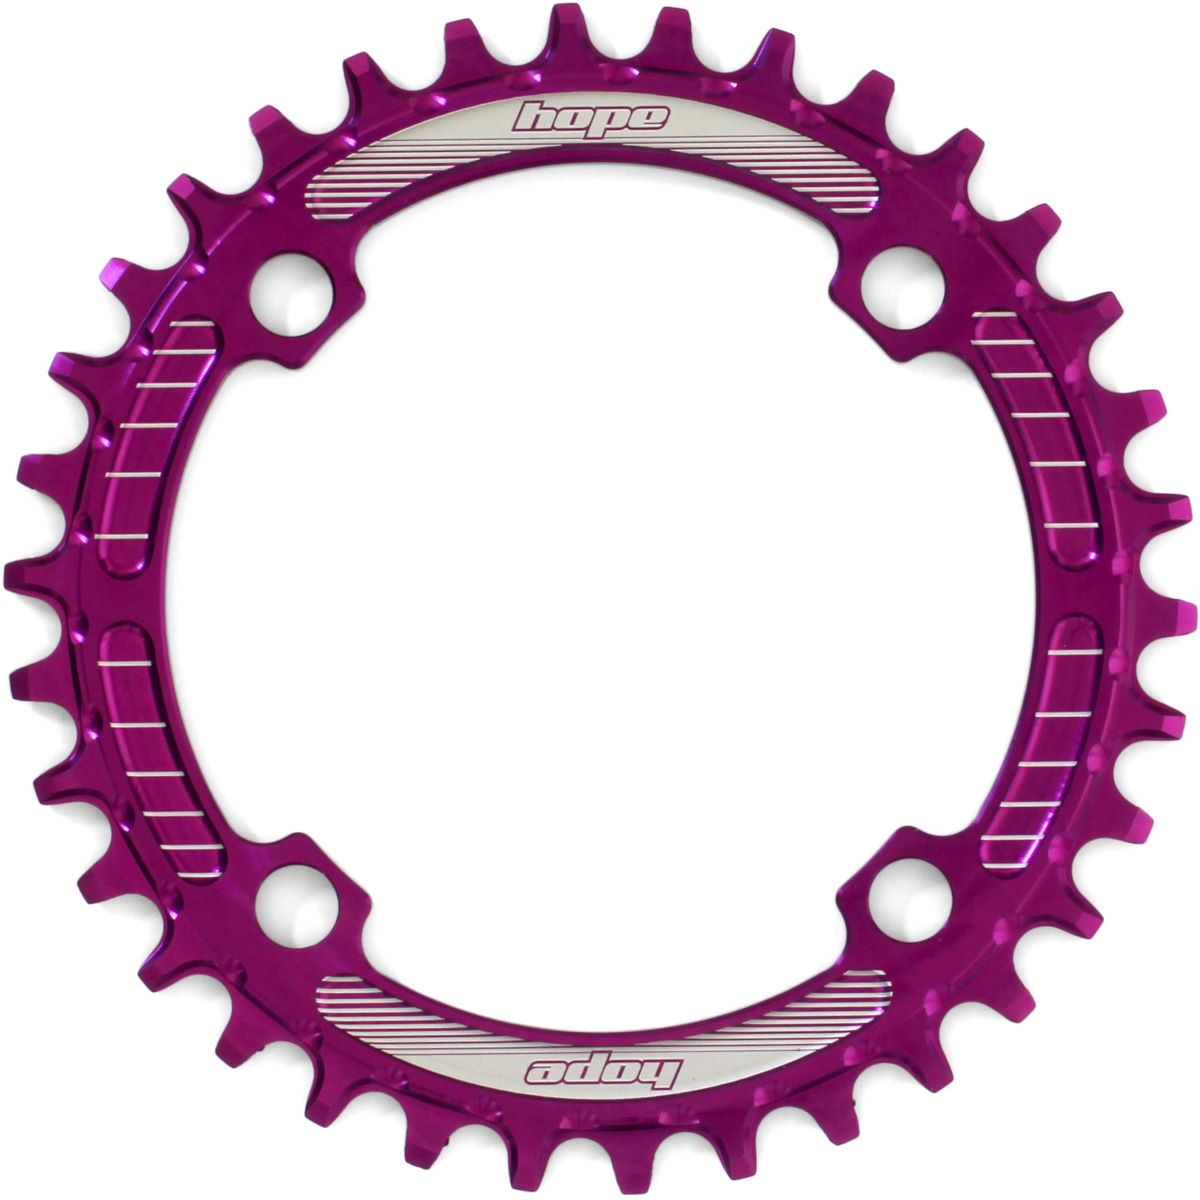 Hope Retainer Narrow/wide Chainring - 34t 104mm 9/10/11 Sp Purple